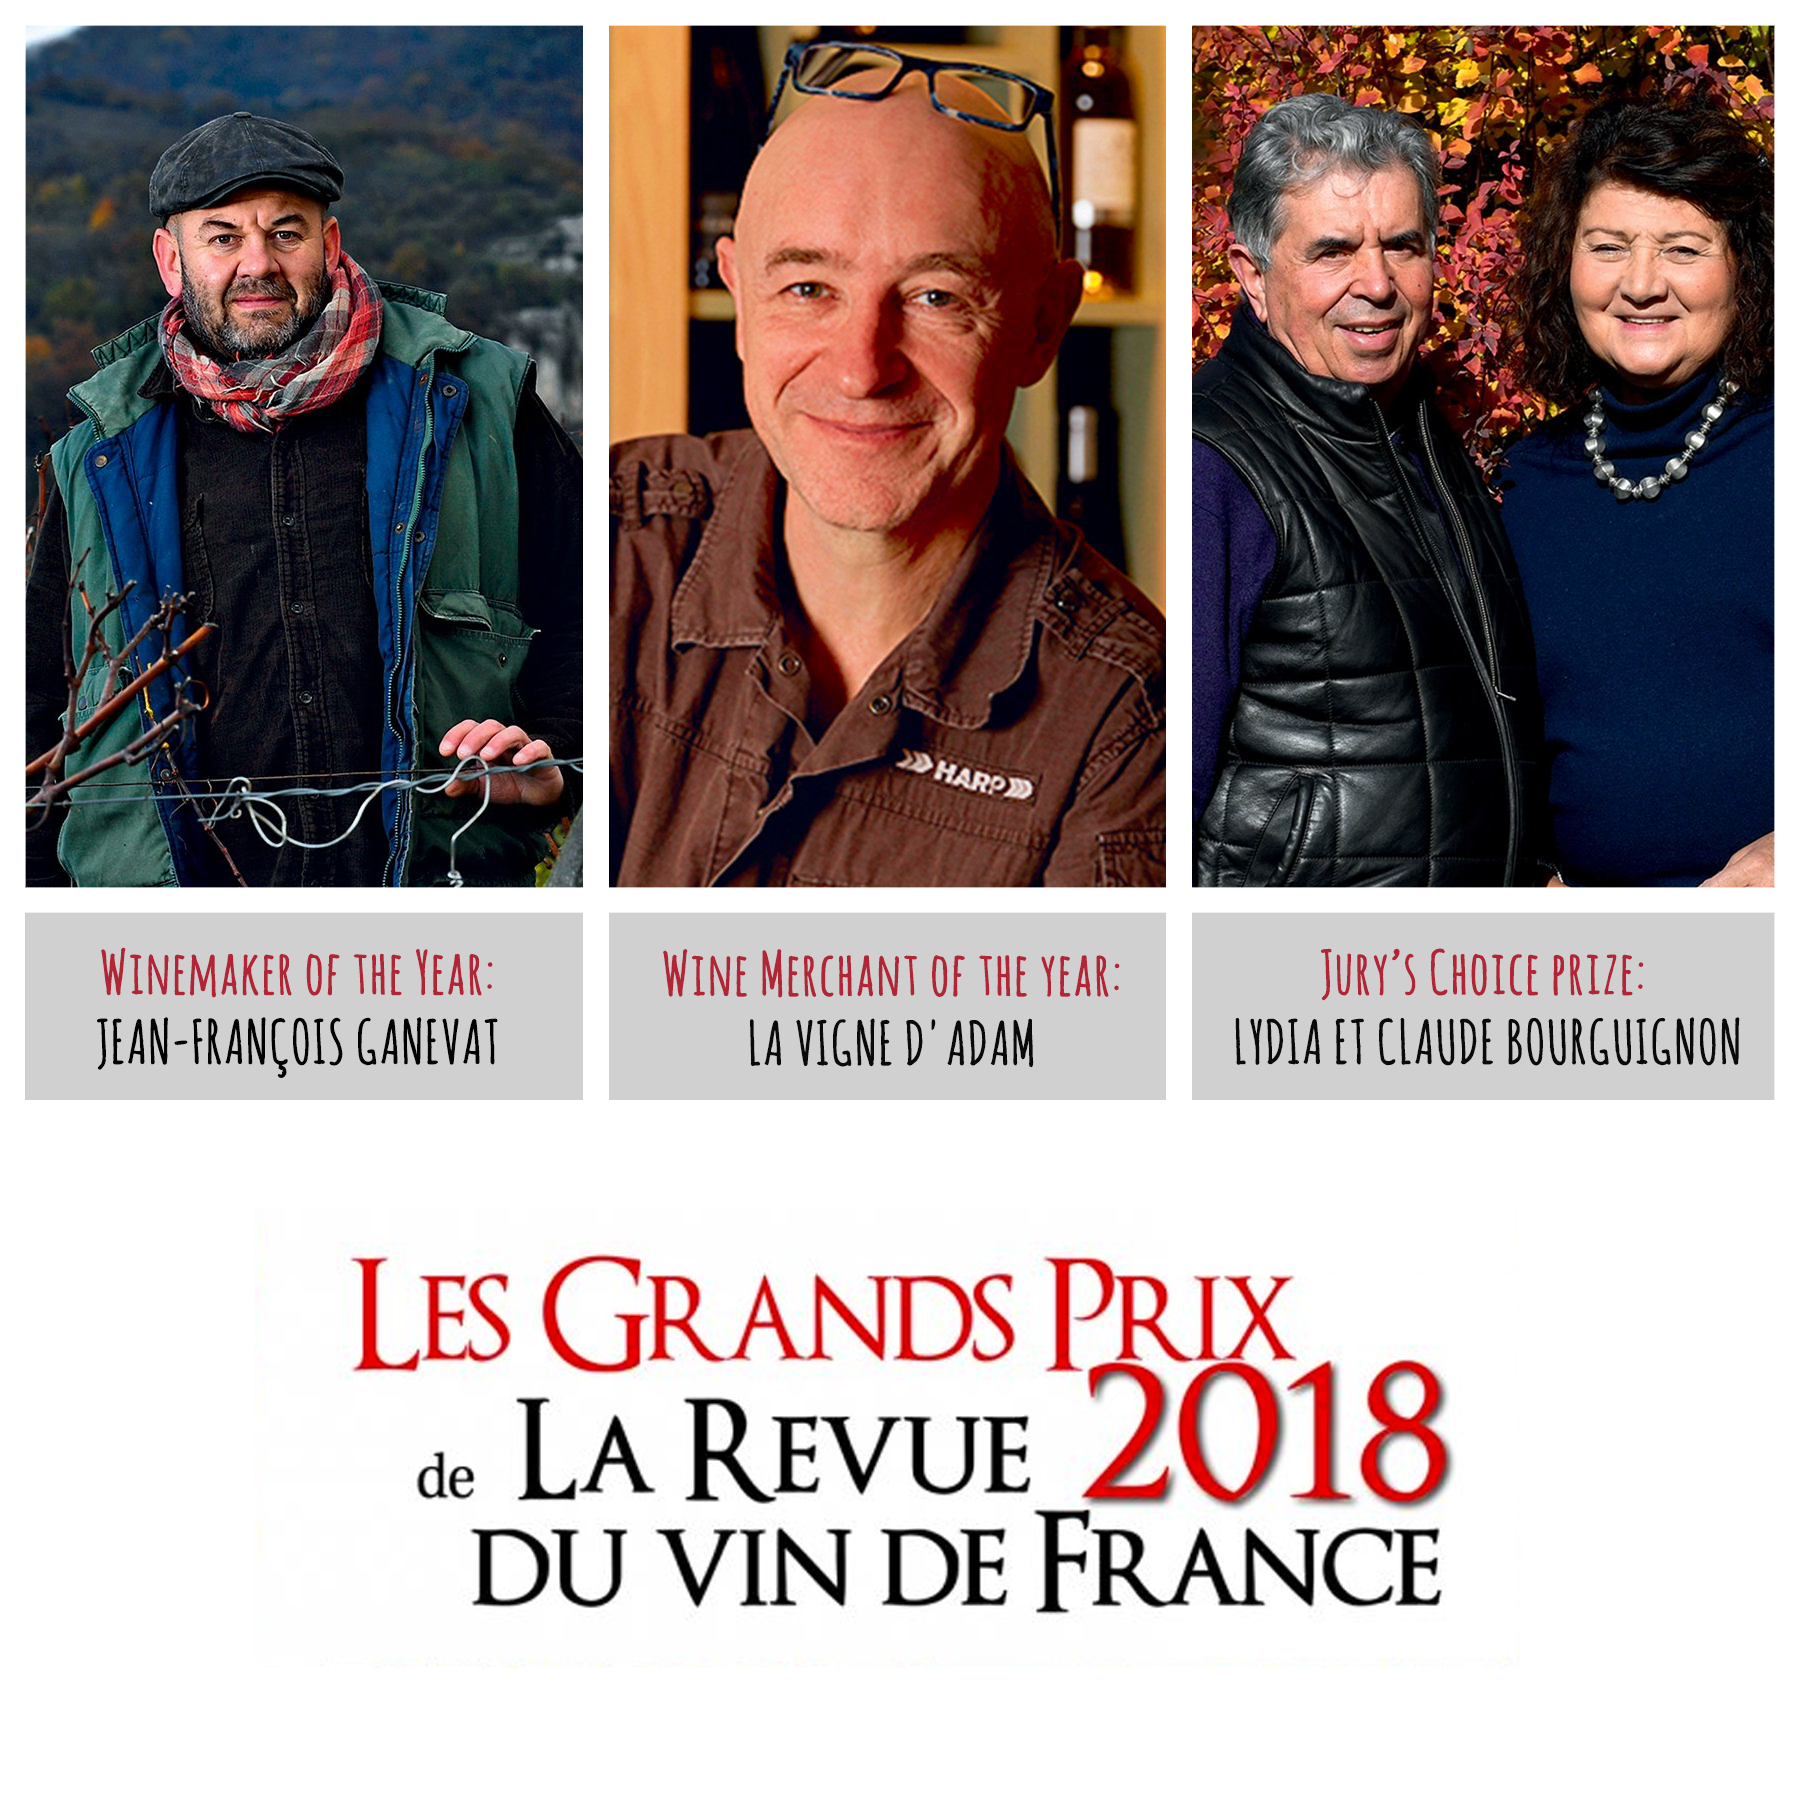 2018 « Revue du Vin de France »'s Grand Prize: power to natural wine!